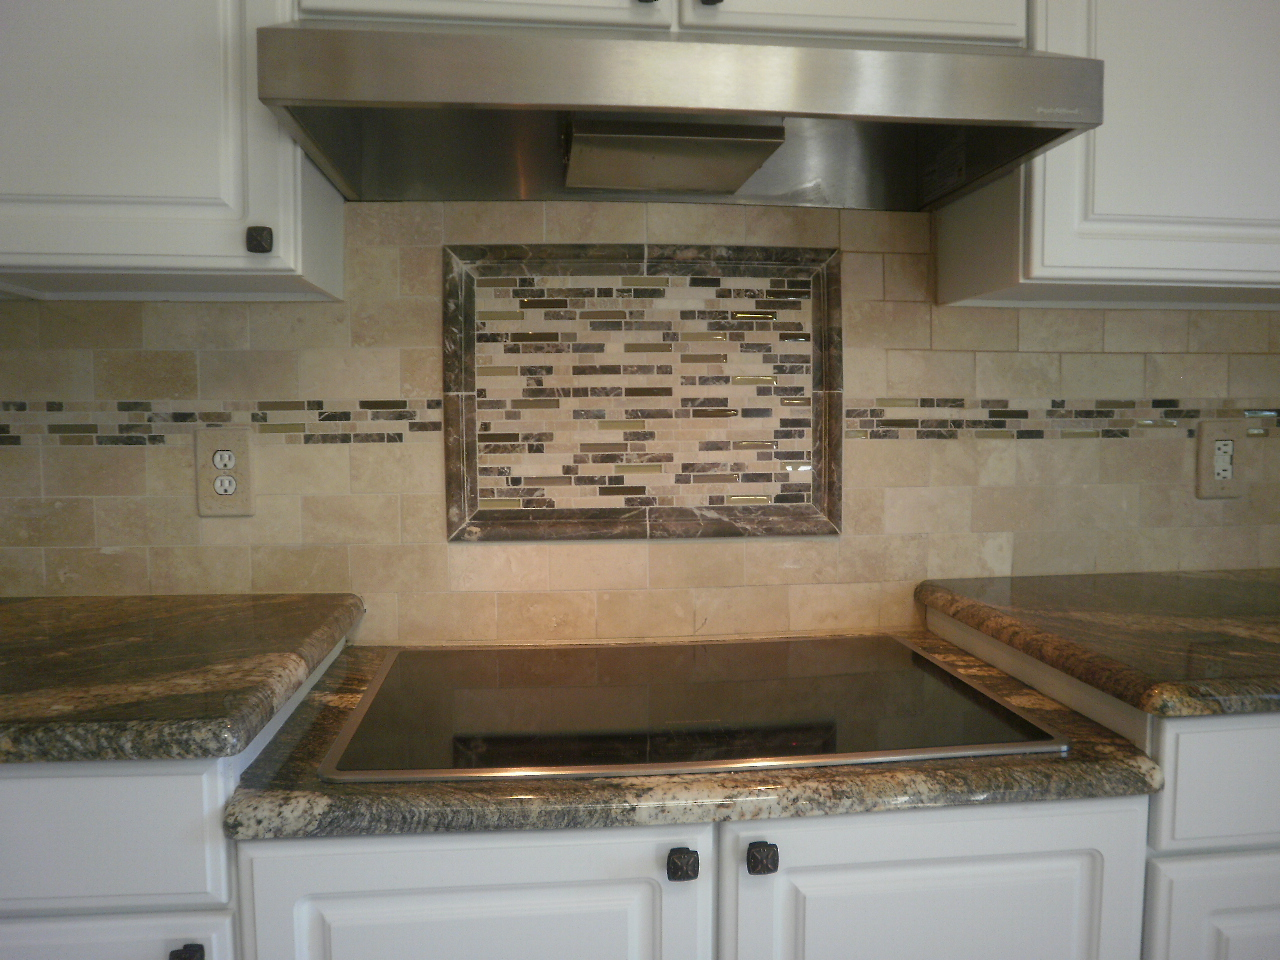 Integrity installations a division of front range tile backsplash ideas photos and pictures dailygadgetfo Image collections